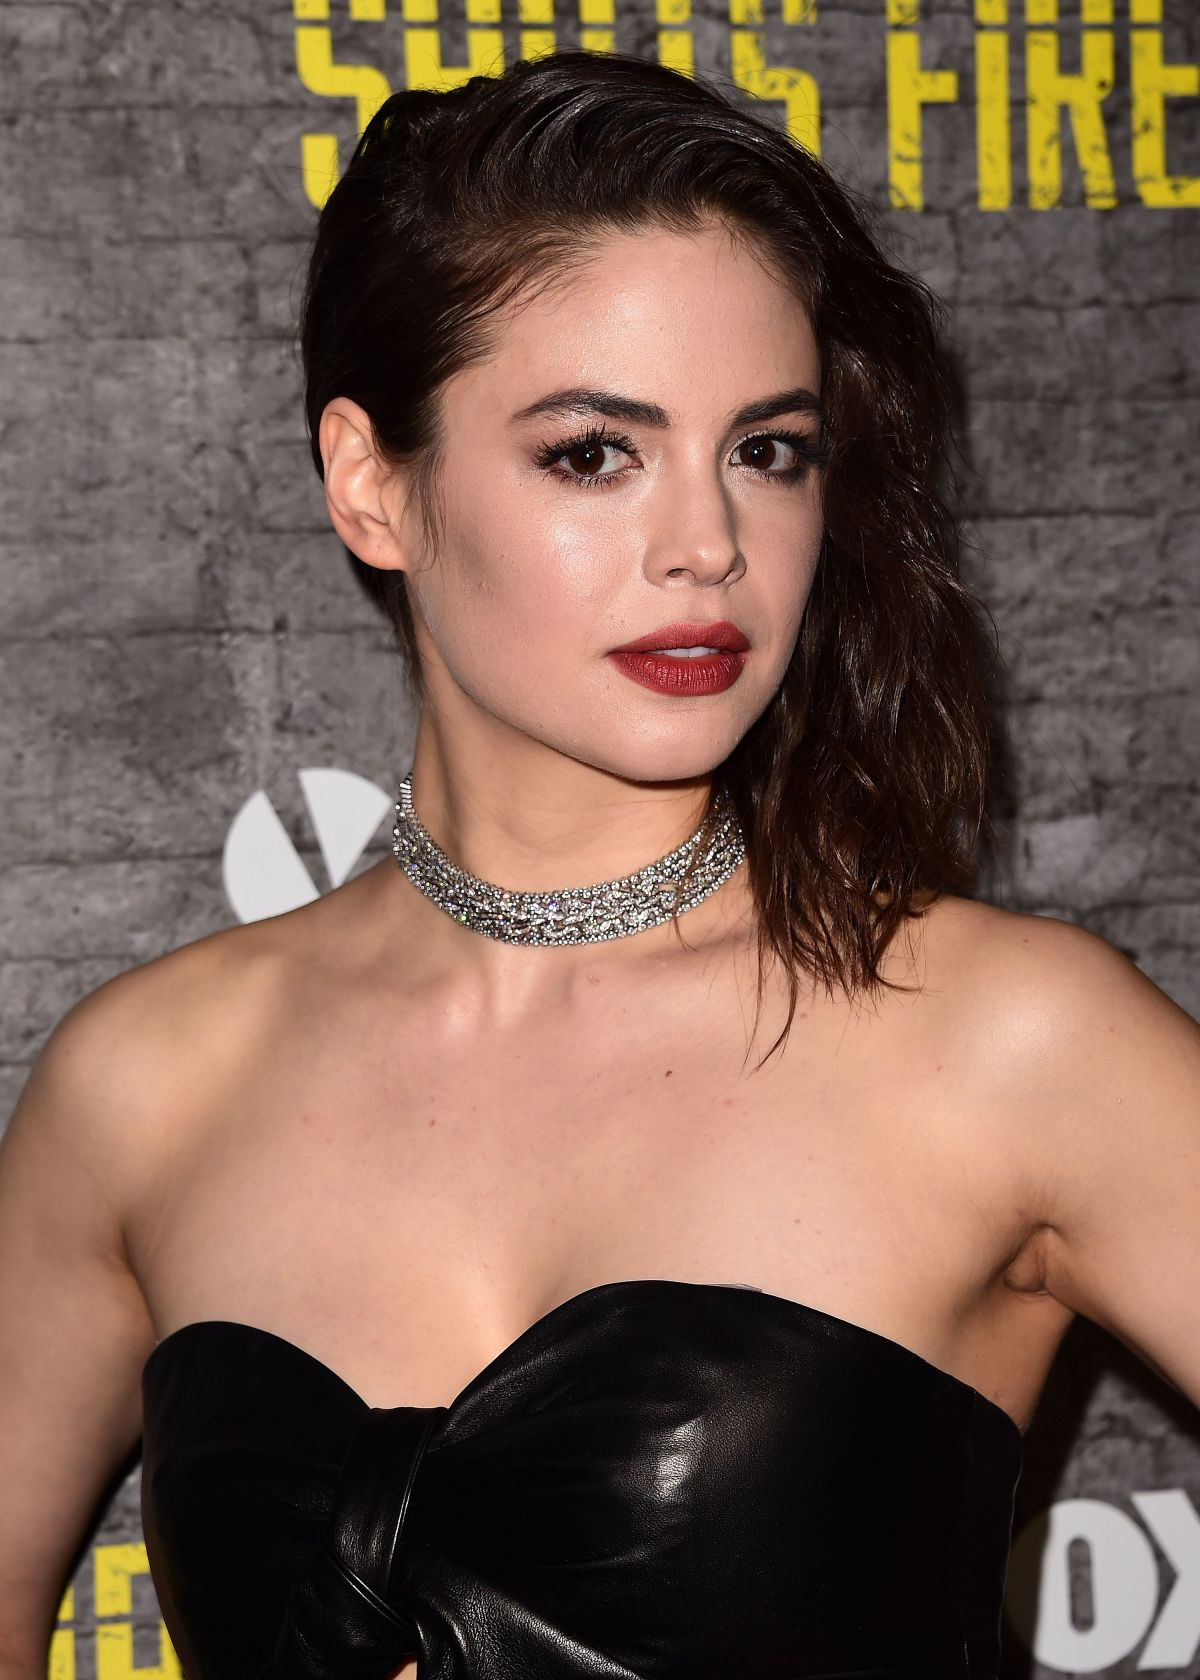 conor-leslie-at-shots-fired-tv-series-premiere-in-los